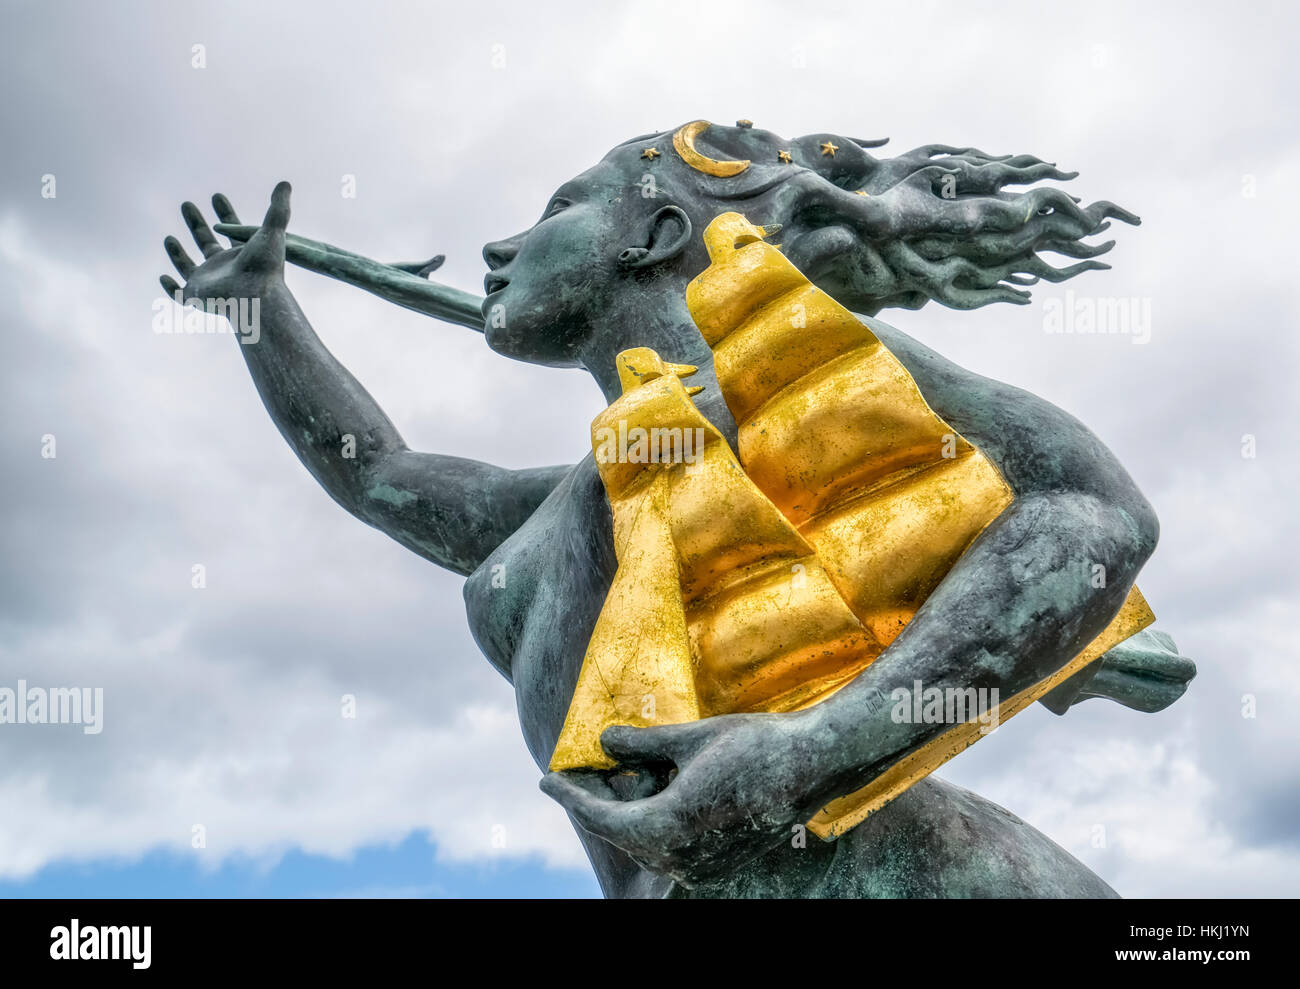 Spirit of South Shields sculpture; South Shields, Tyne and Wear, England Stock Photo